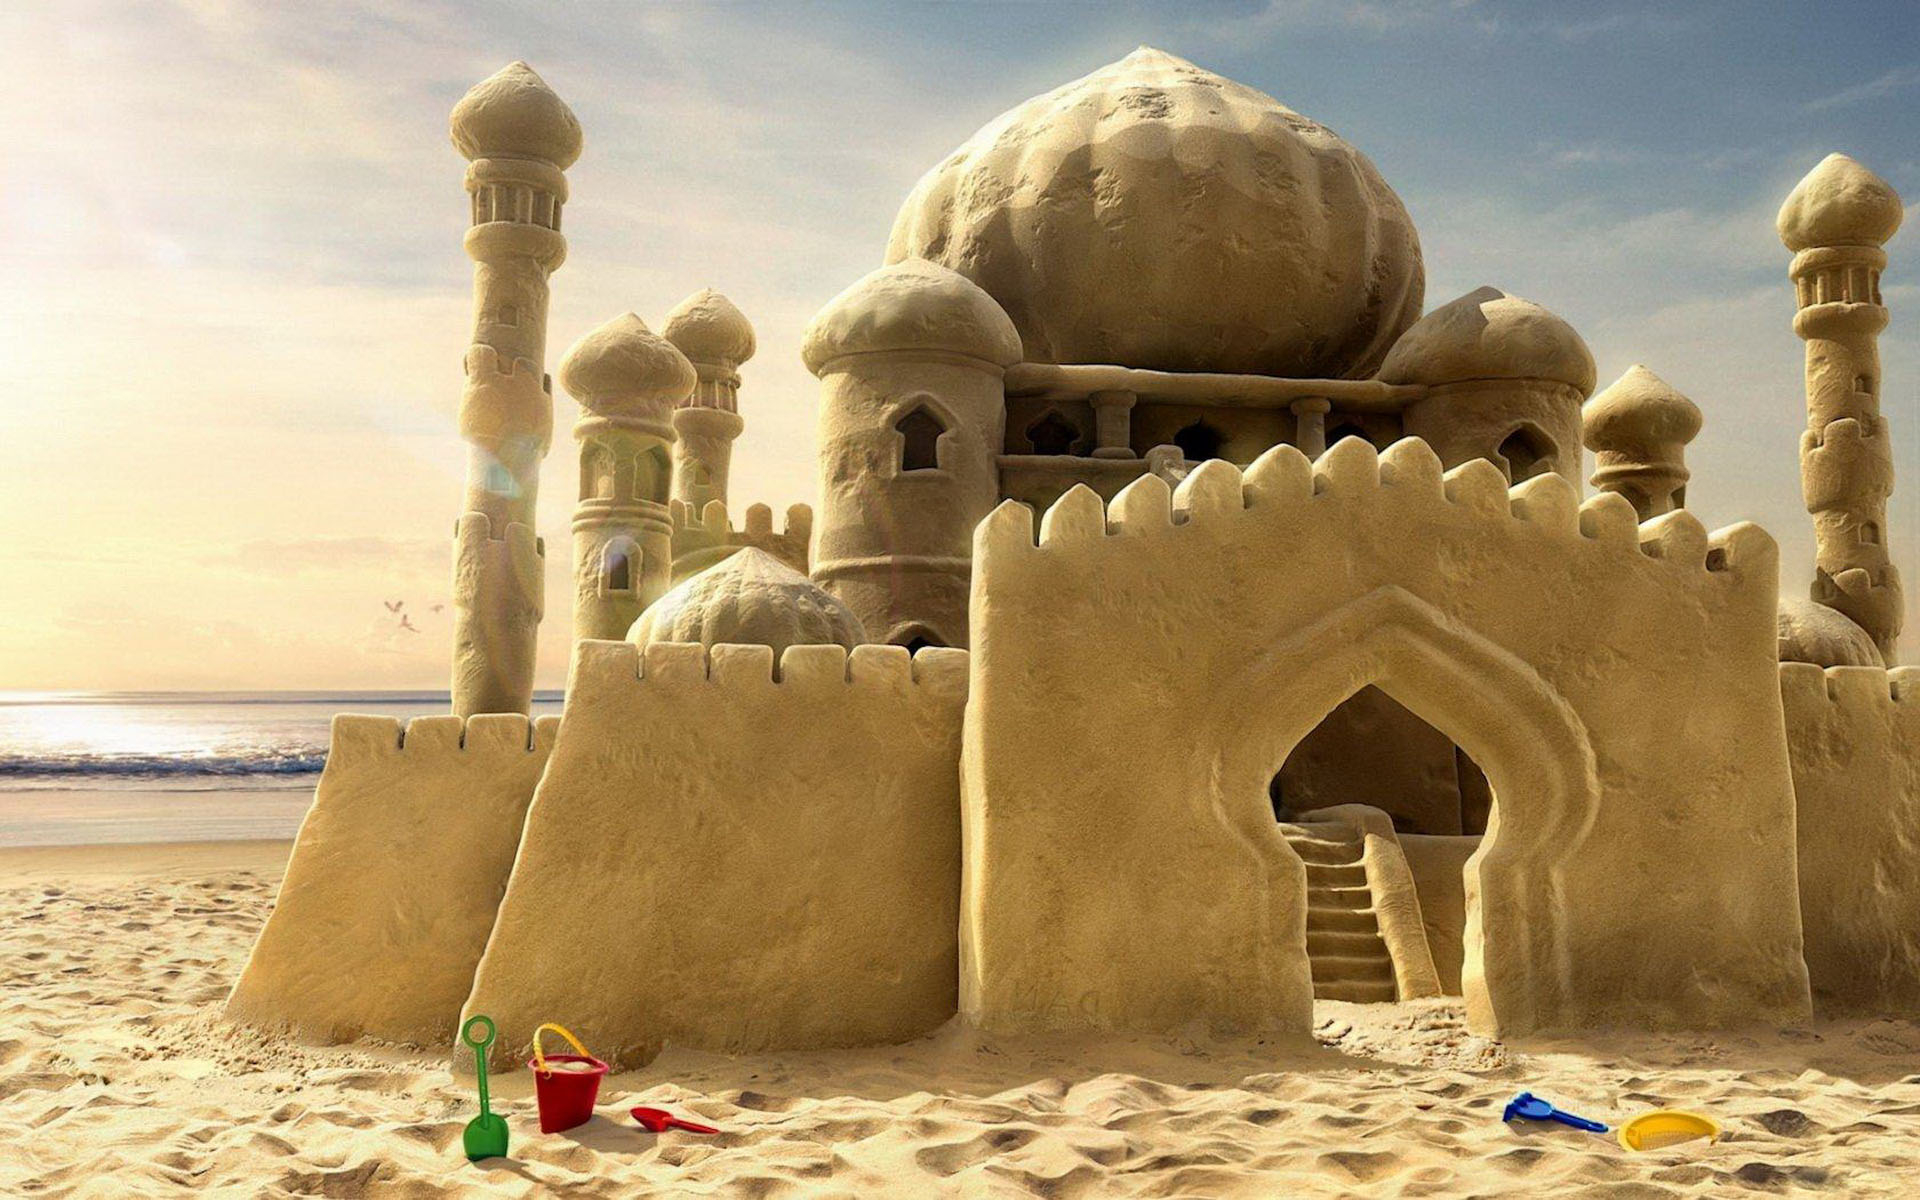 Life-size sandcastle with ornate, designed with middle-eastern type architecture.